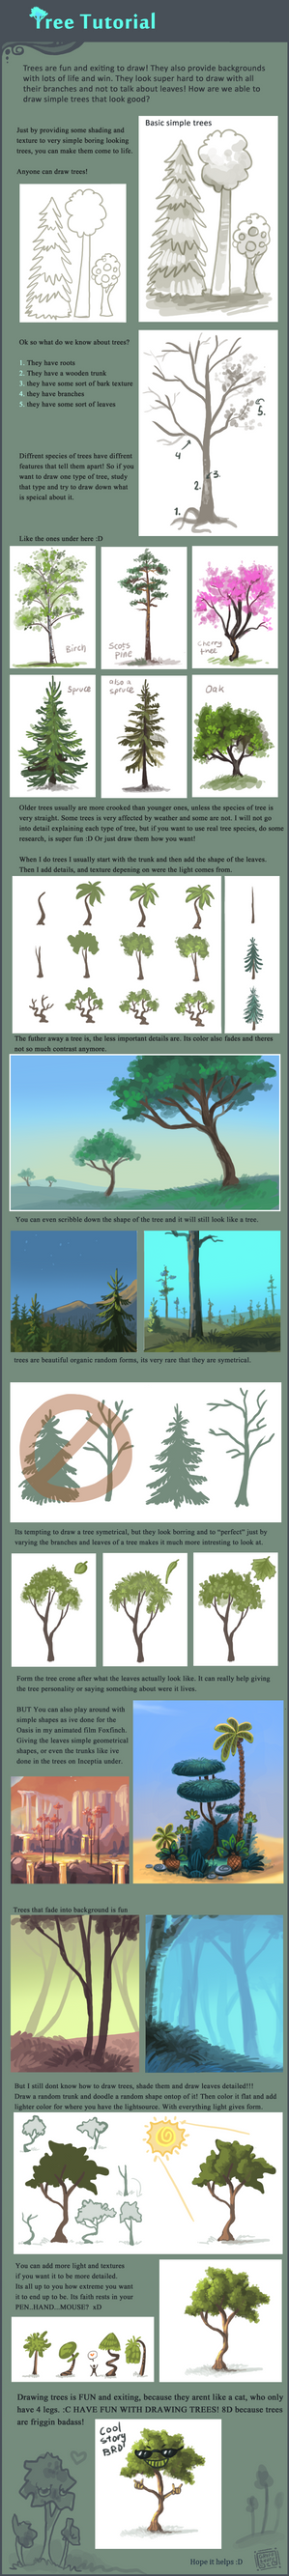 Tree tutorial by griffsnuff